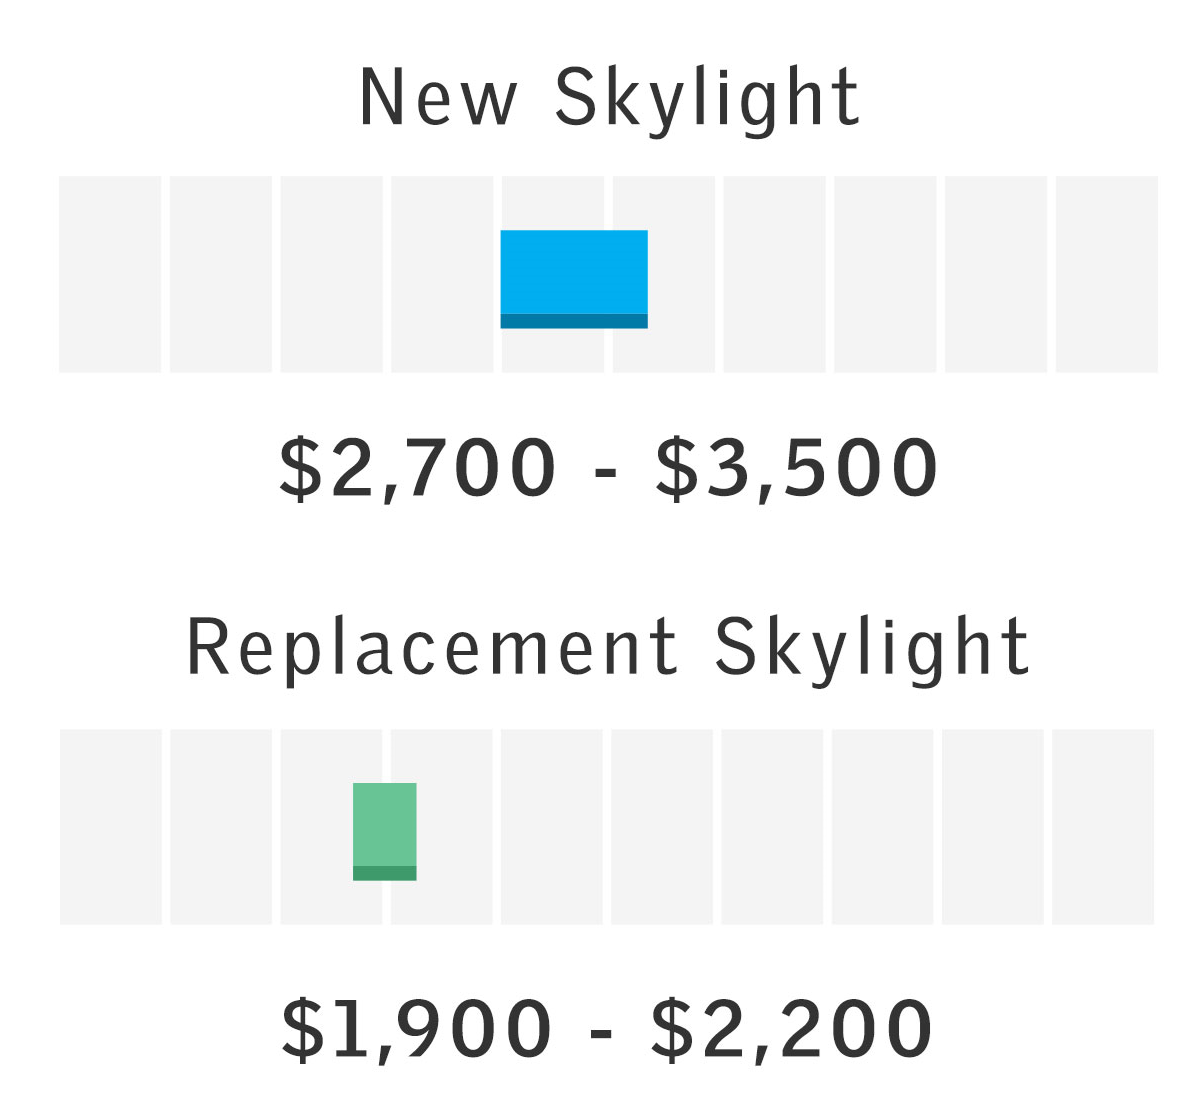 Price range for a single solar powered skylight